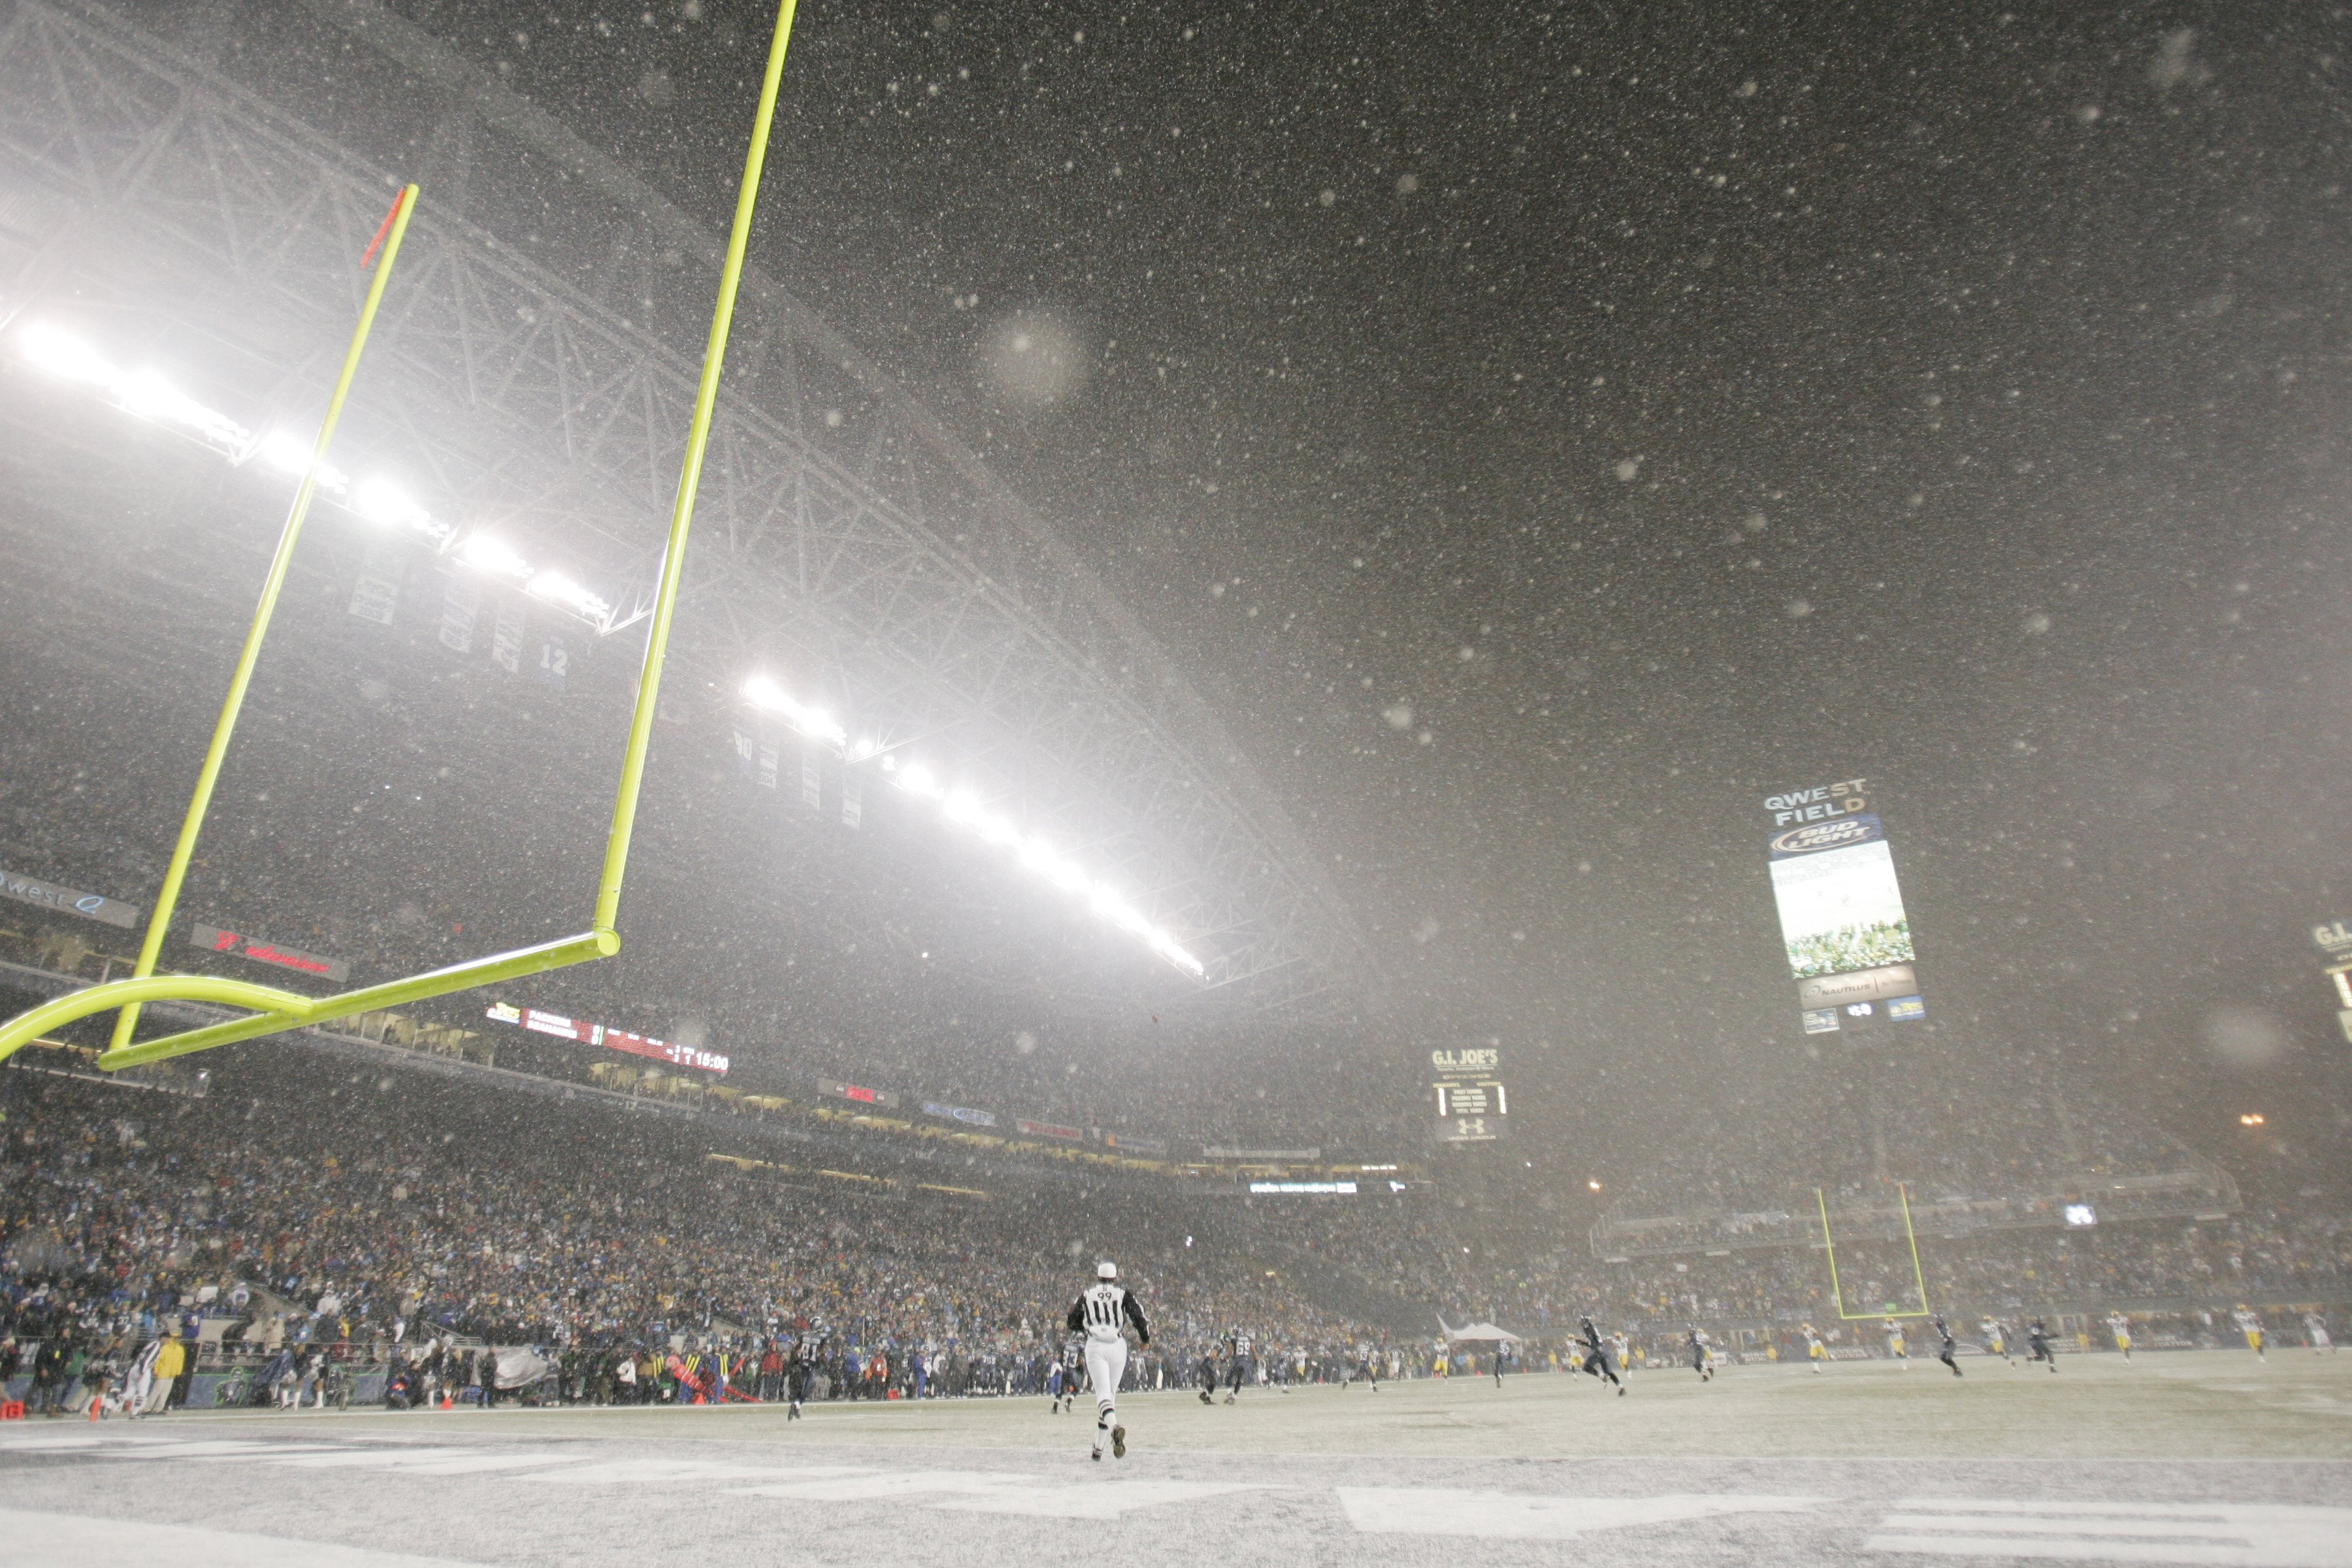 SEATTLE - NOVEMBER 27:  Snow falls during the Seattle Seahawks game against the Green Bay Packers on November 27, 2006 at Qwest Field in Seattle, Washington. The Seahawks defeated the Packers 34-24. (Photo by Jonathan Ferrey/Getty Images)